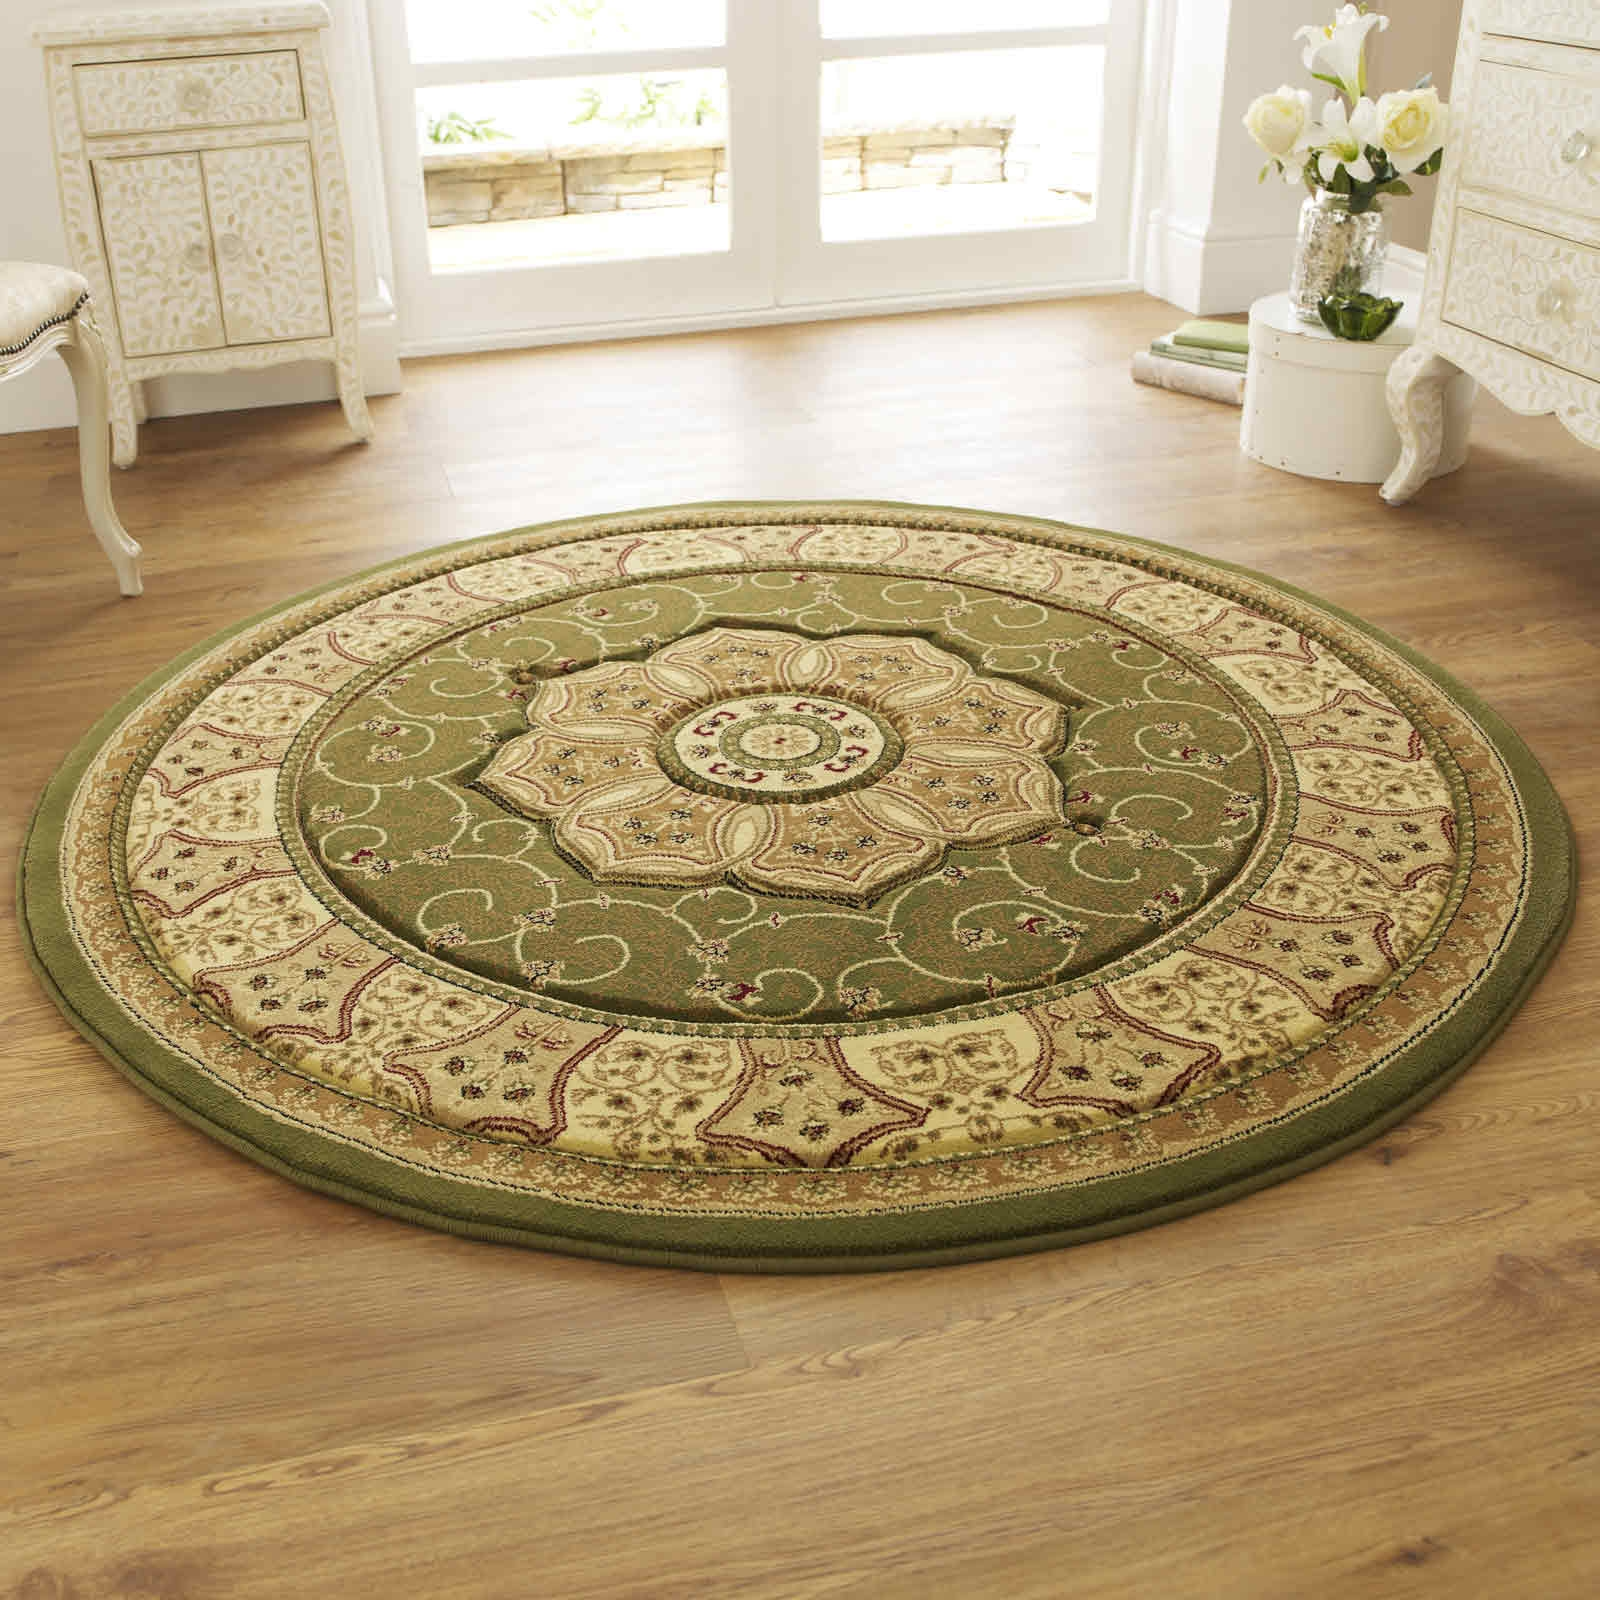 Circle Rugs Round Braided Rugs Cheap Home Design Ideas Circle With Regard To Circular Rugs (View 3 of 15)